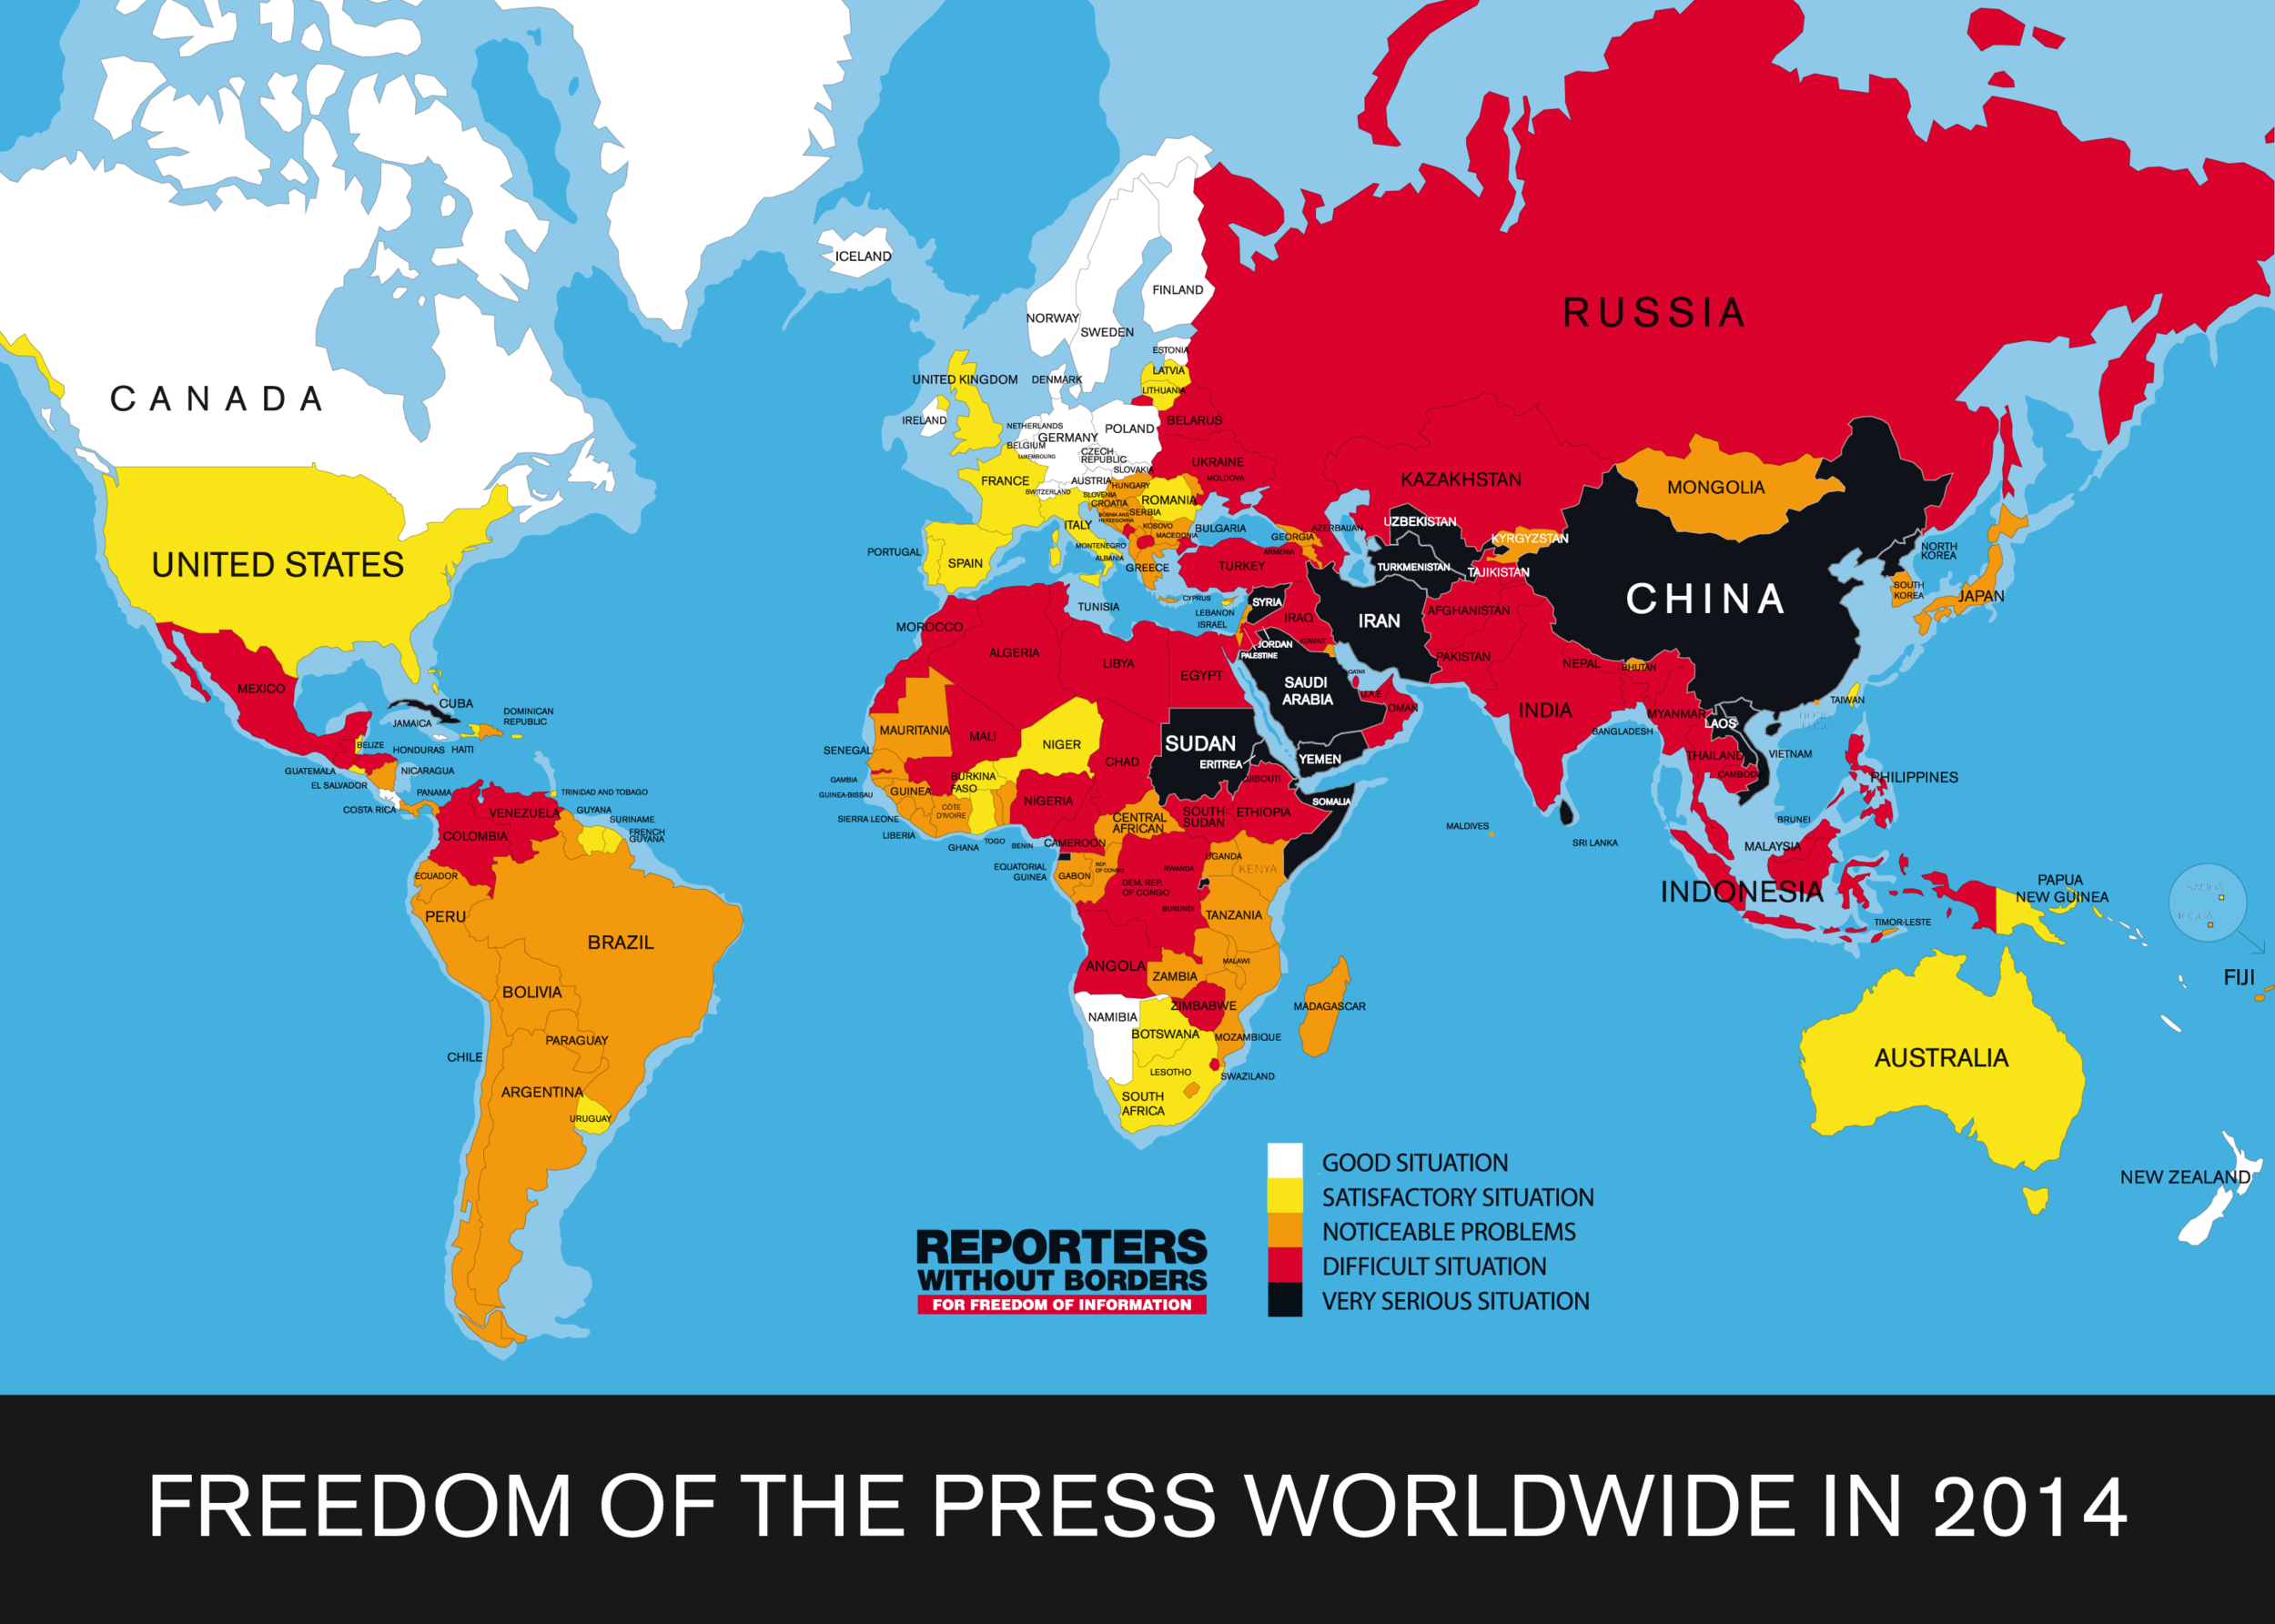 World Press Freedom Index Map 2014